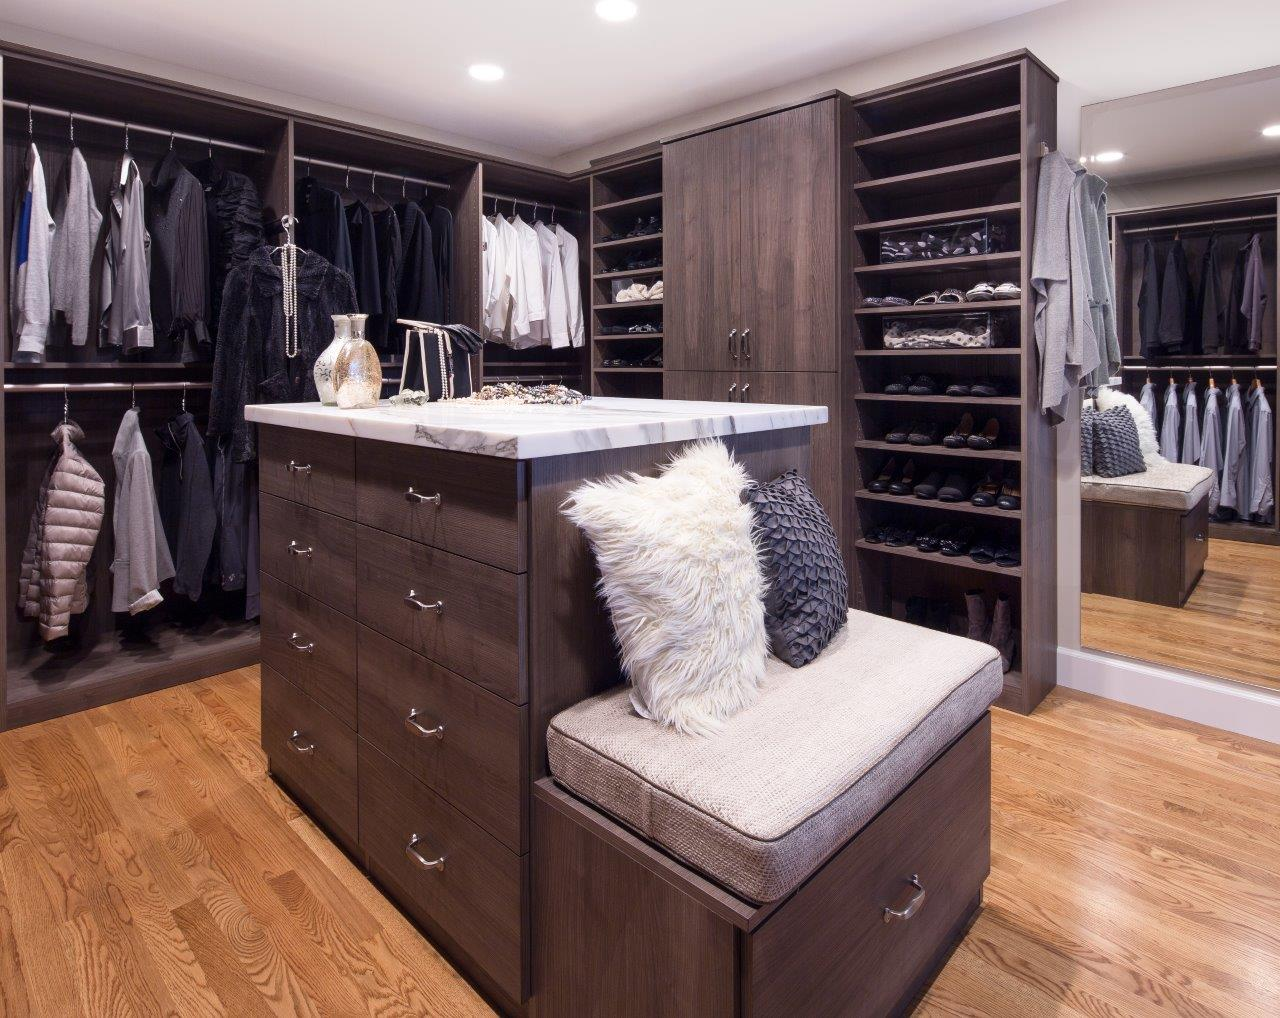 Custom Deluxe Walk-in Closet by Valet Custom Cabinets & Closets